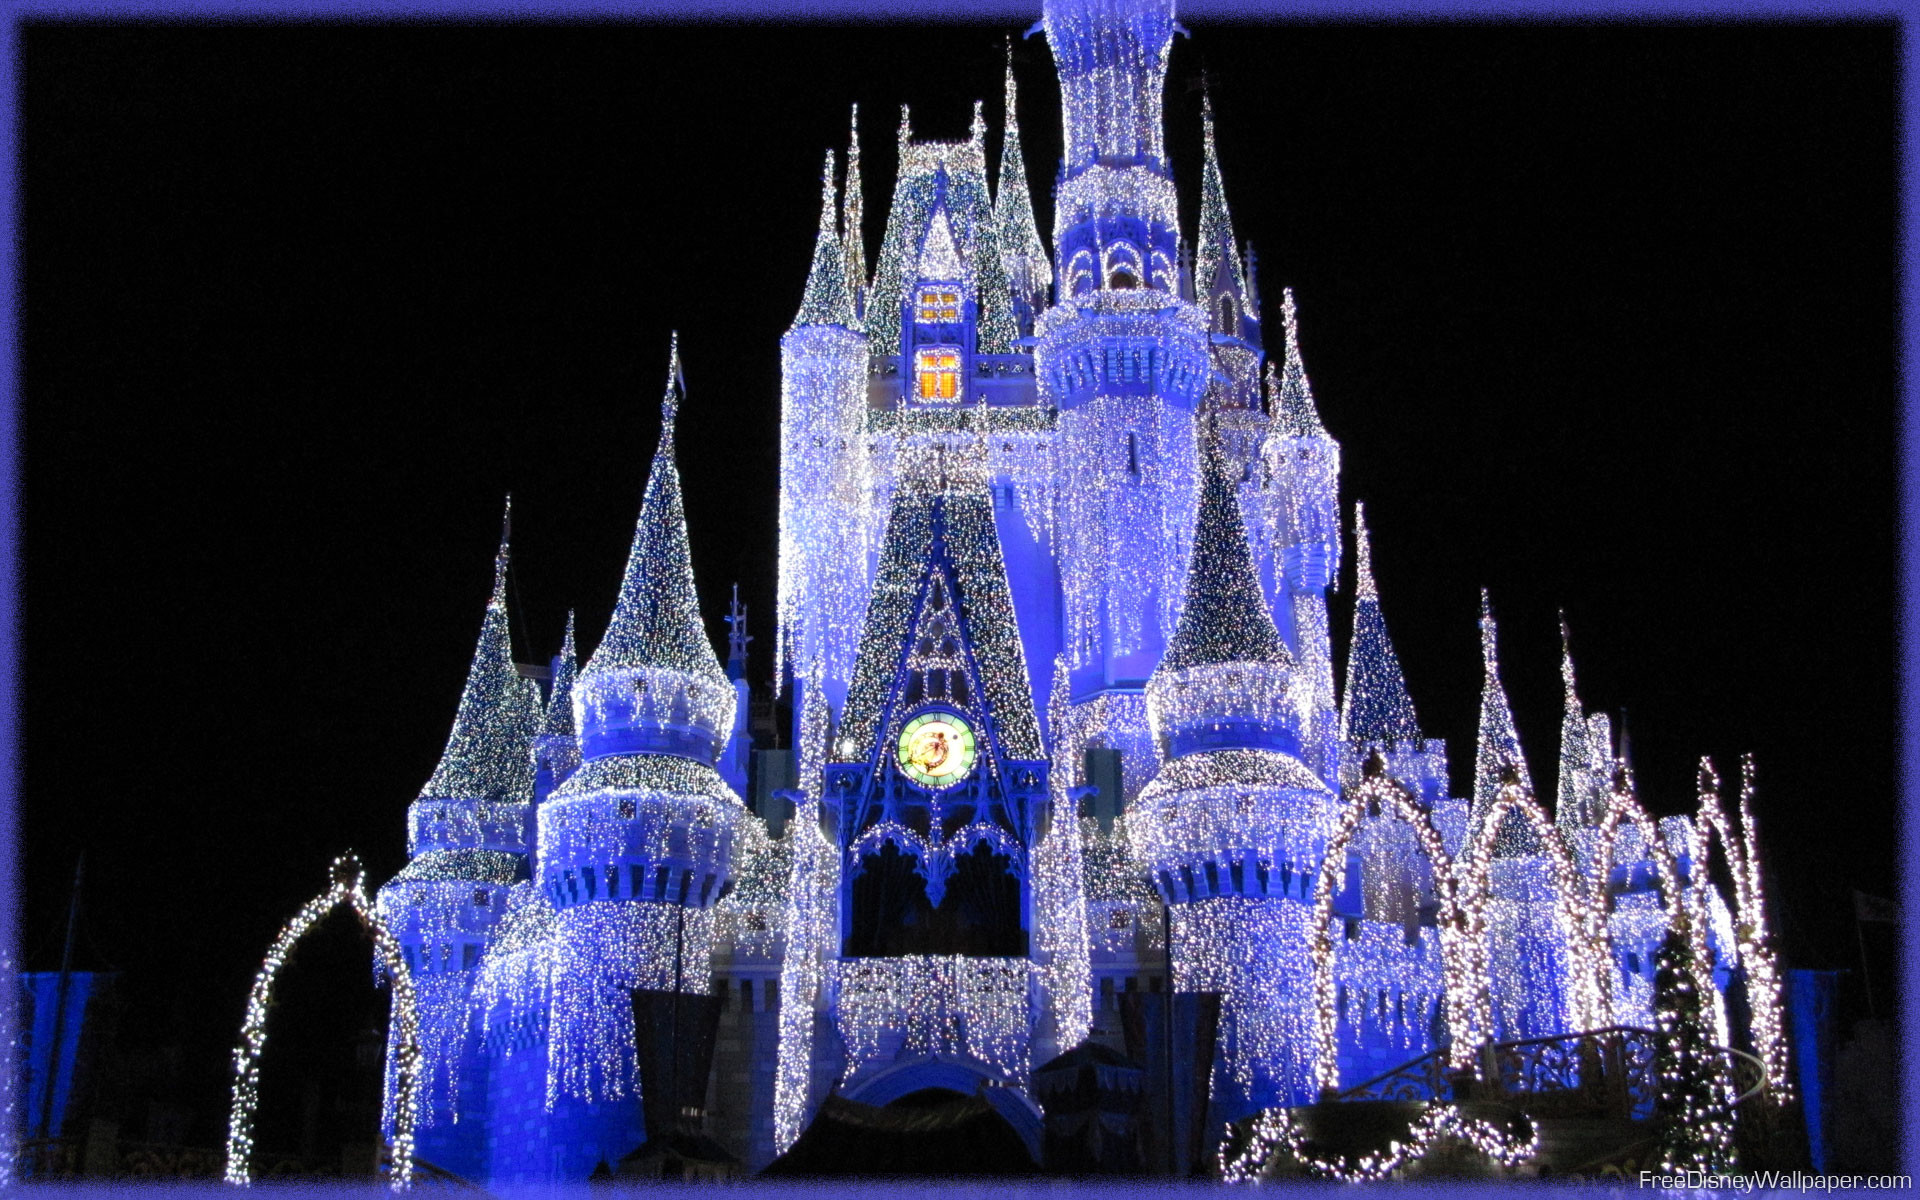 Disney Christmas Wallpaper and Screensavers 57 images 1920x1200